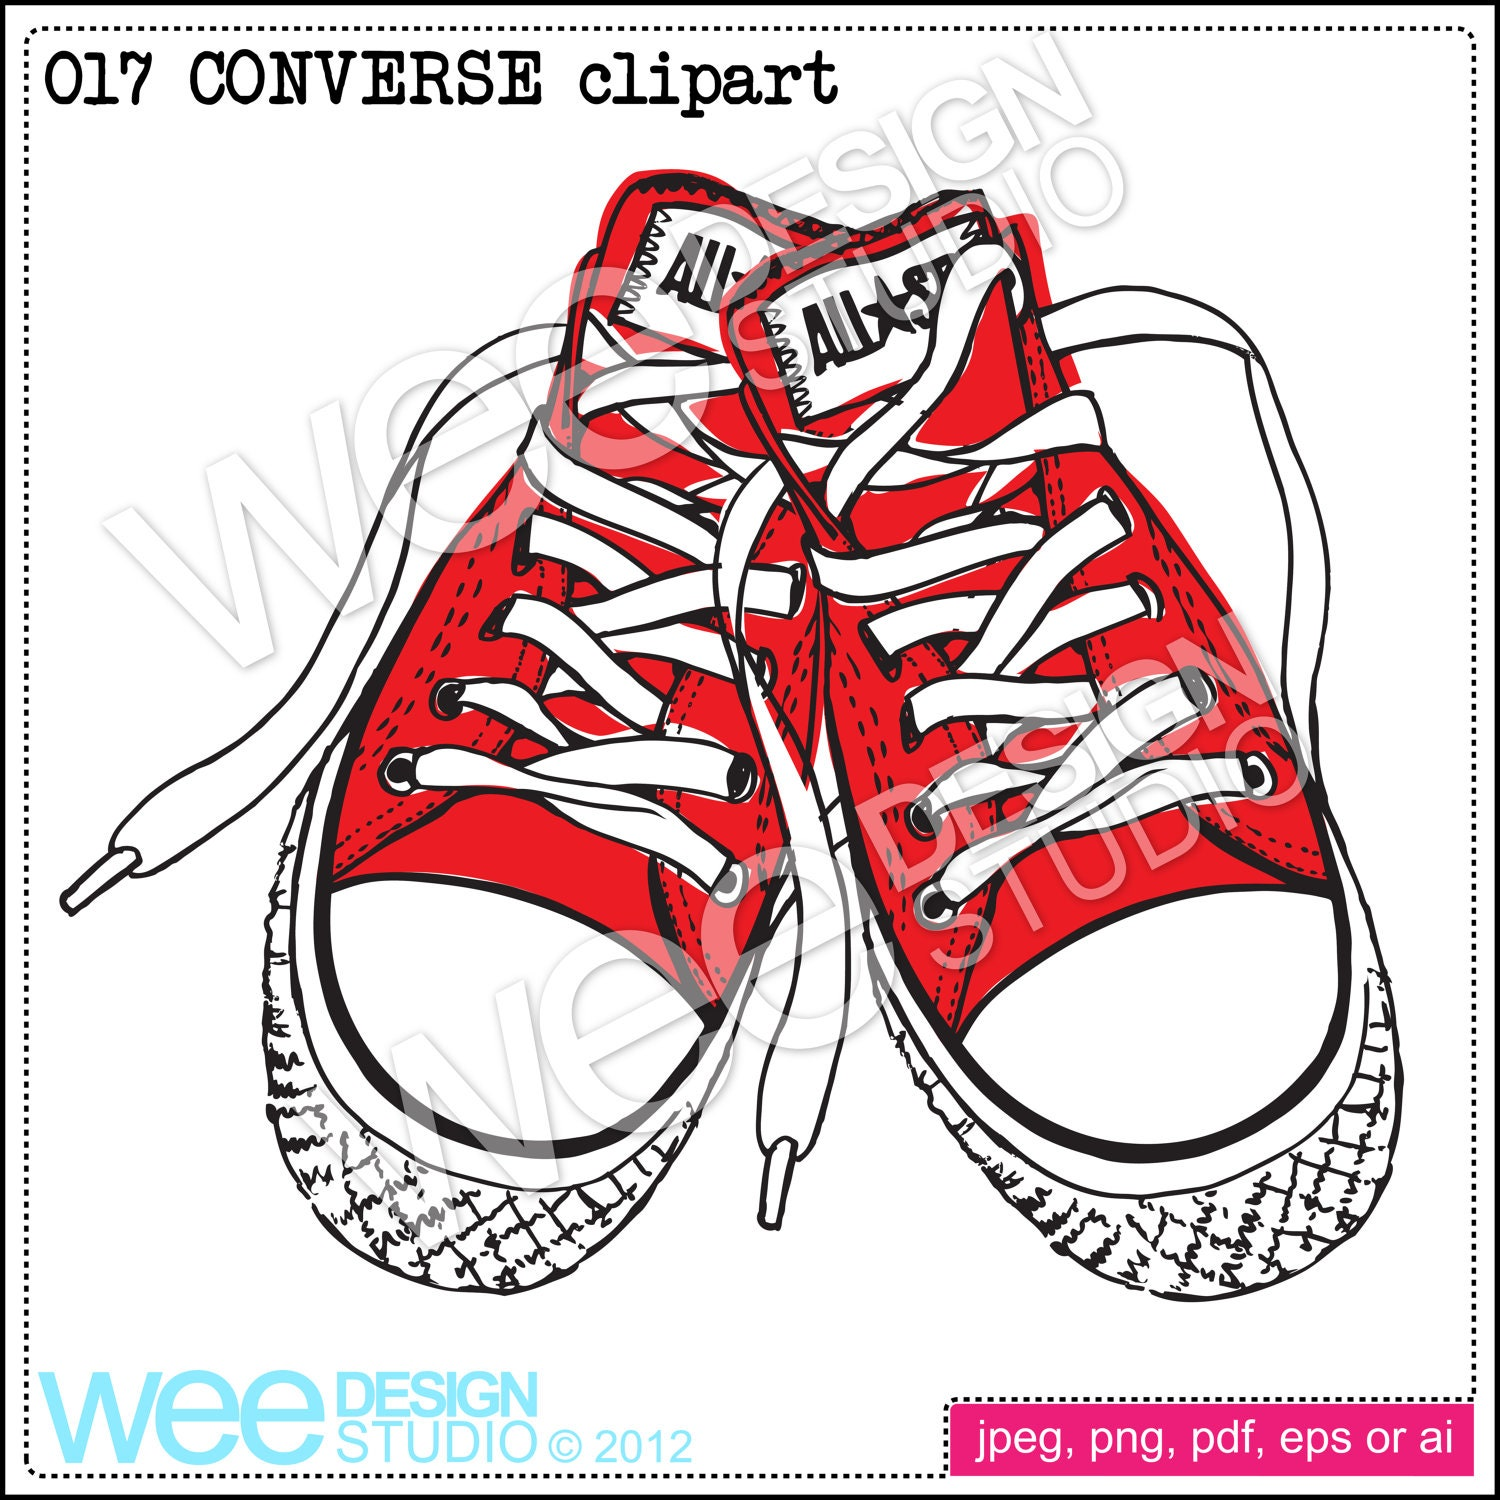 converse shoes clipart. 🔎zoom converse shoes clipart